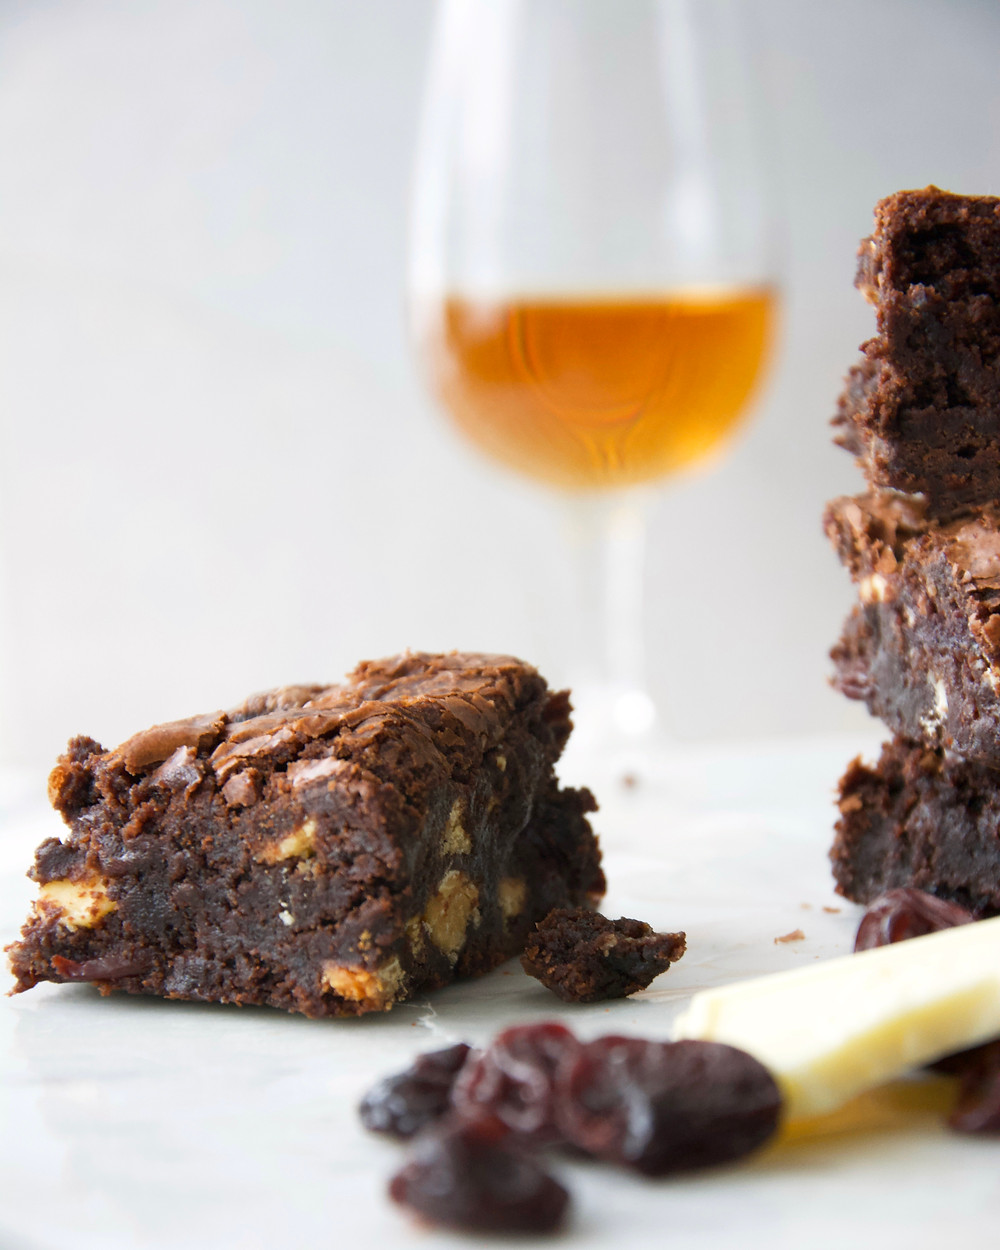 Bourbon soaked cherries with white chocolate in a fudge brownie.